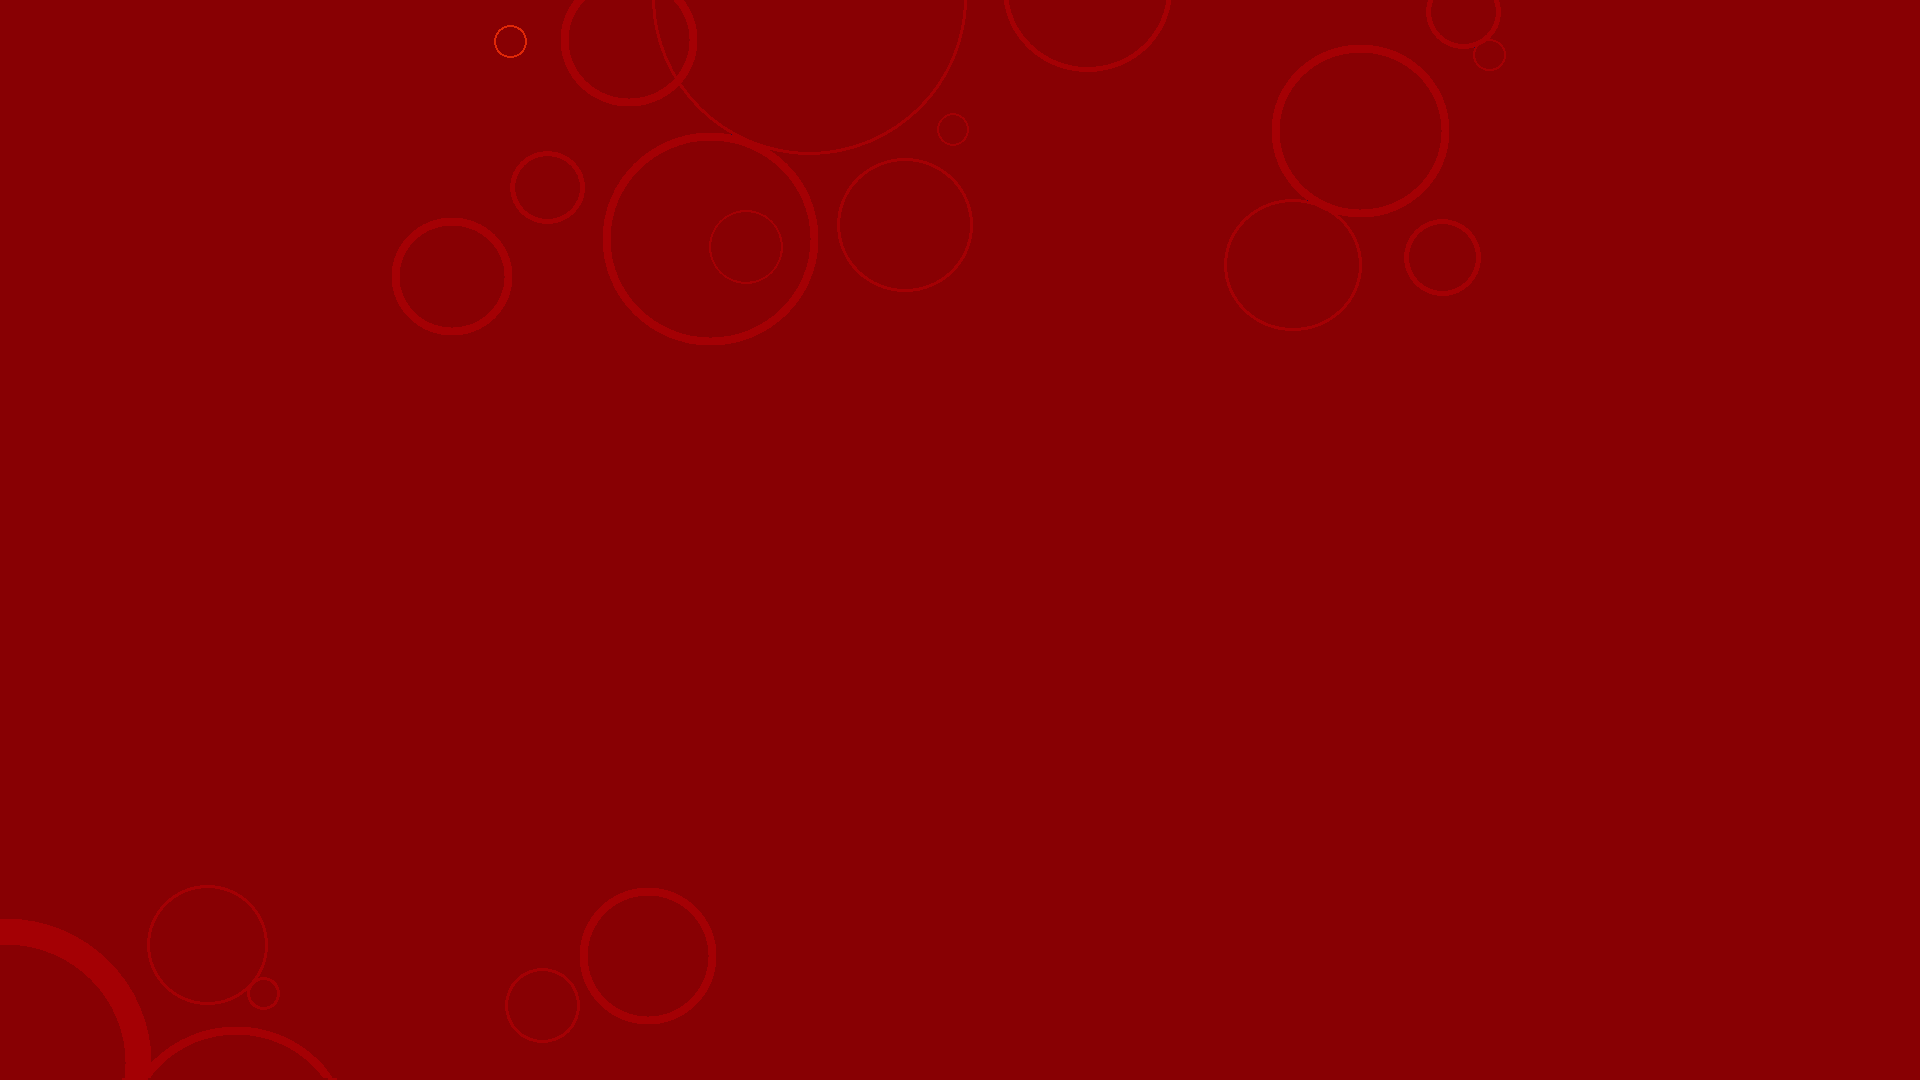 dark red plain background collection 15 wallpapers